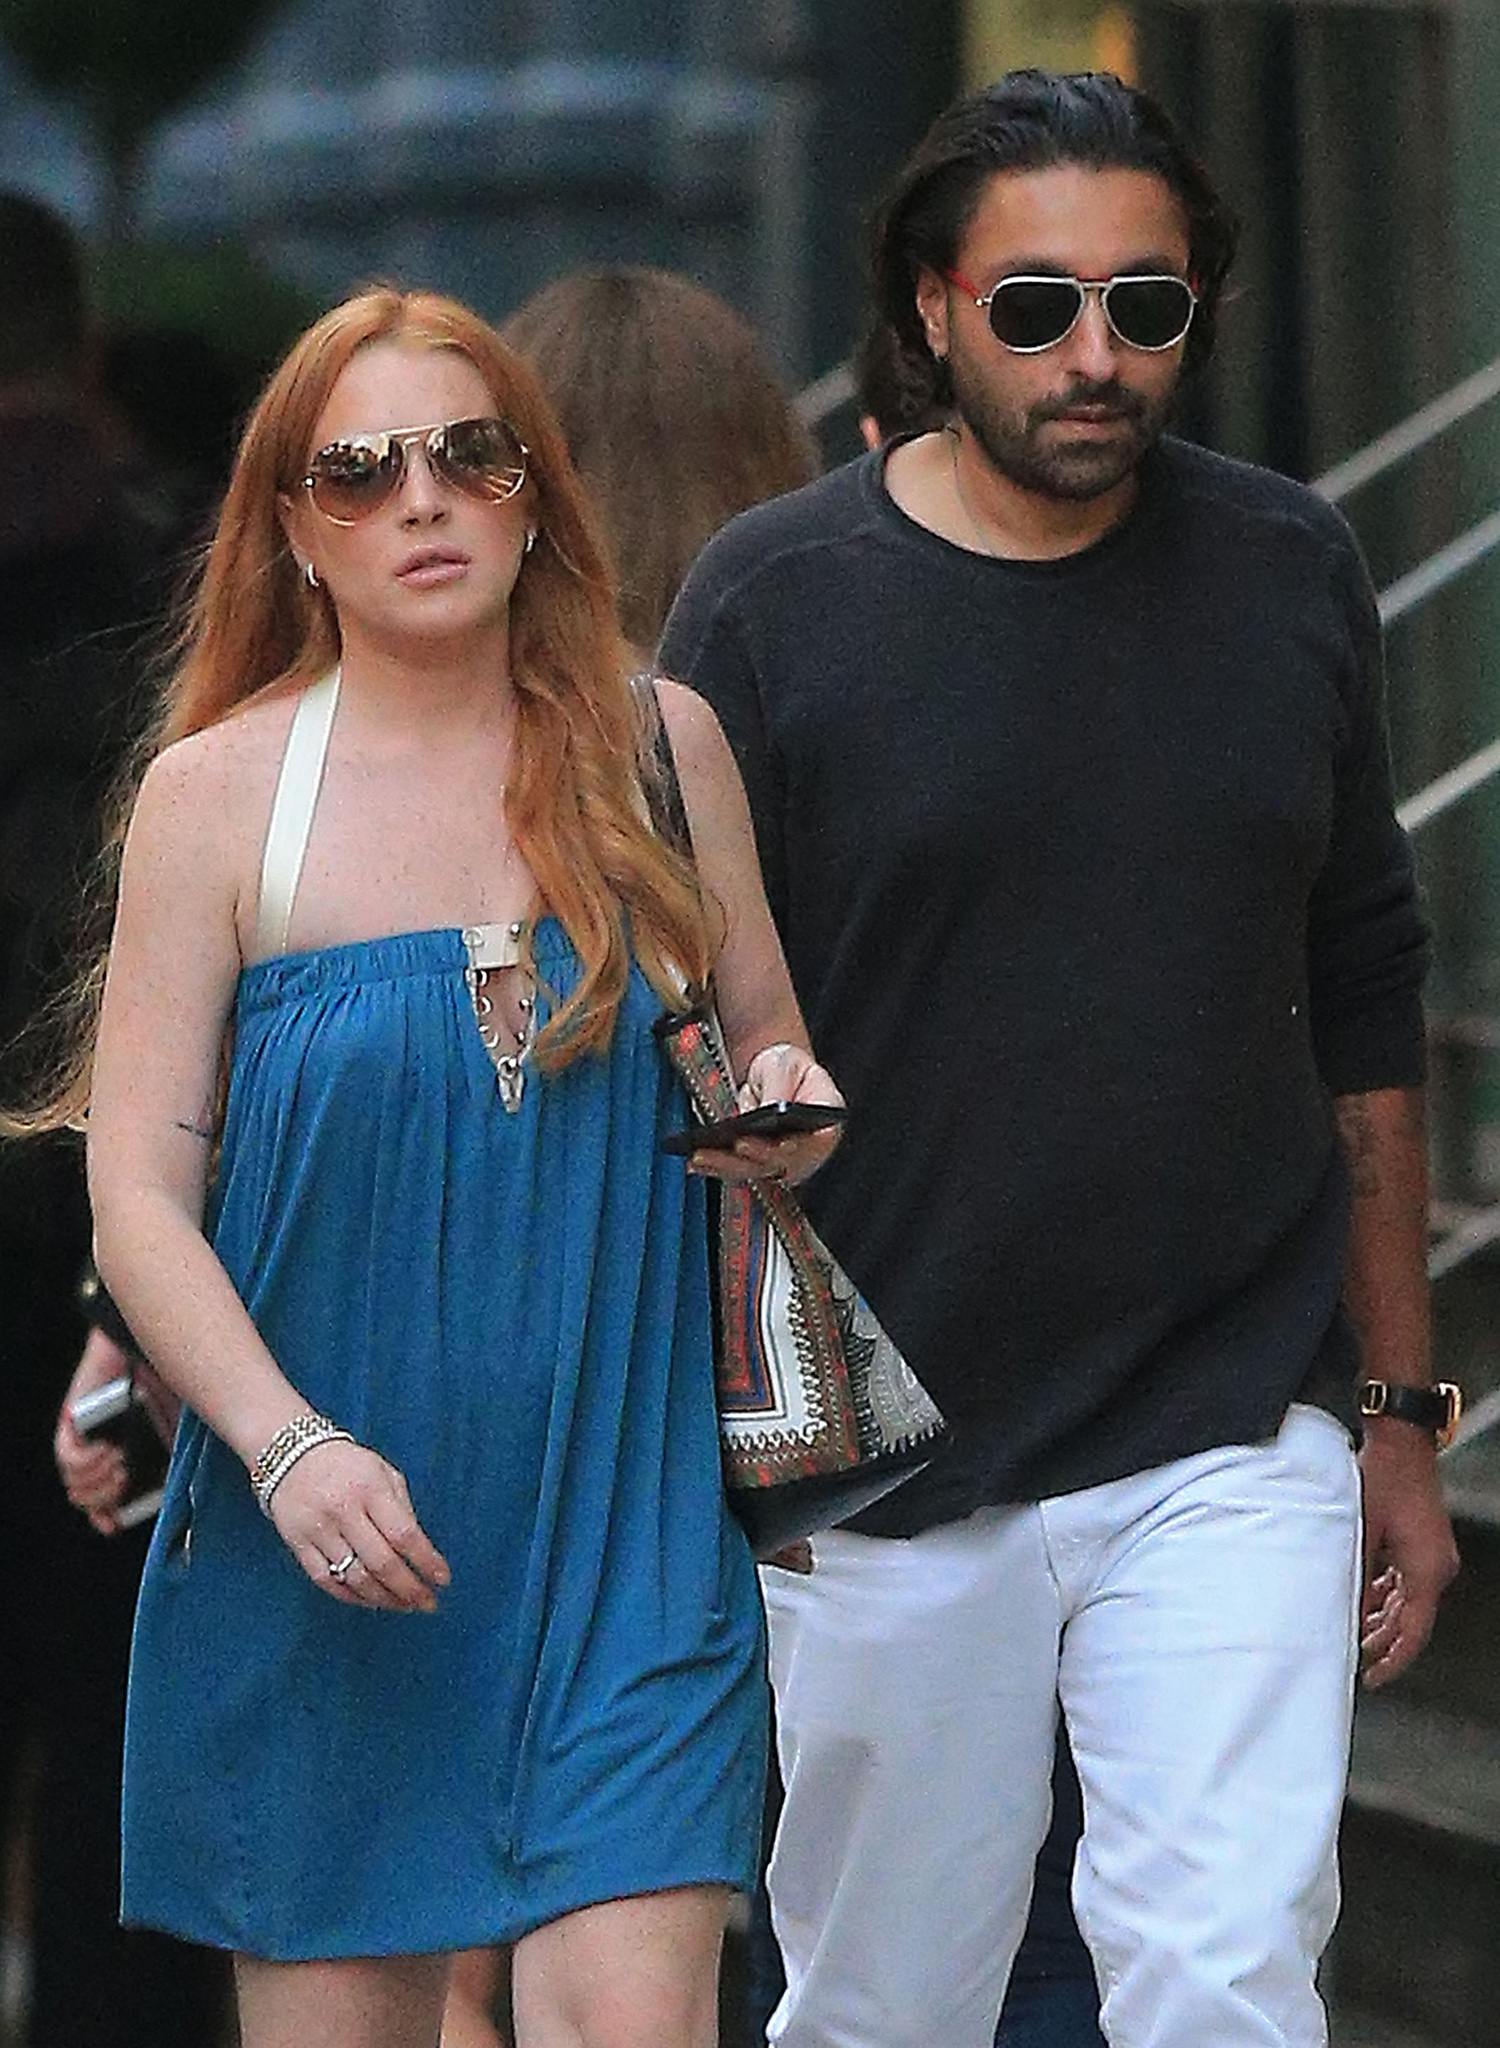 Lindsay Lohan and Vikram Chatwal take a stroll on 8/20/13 (Splash News)